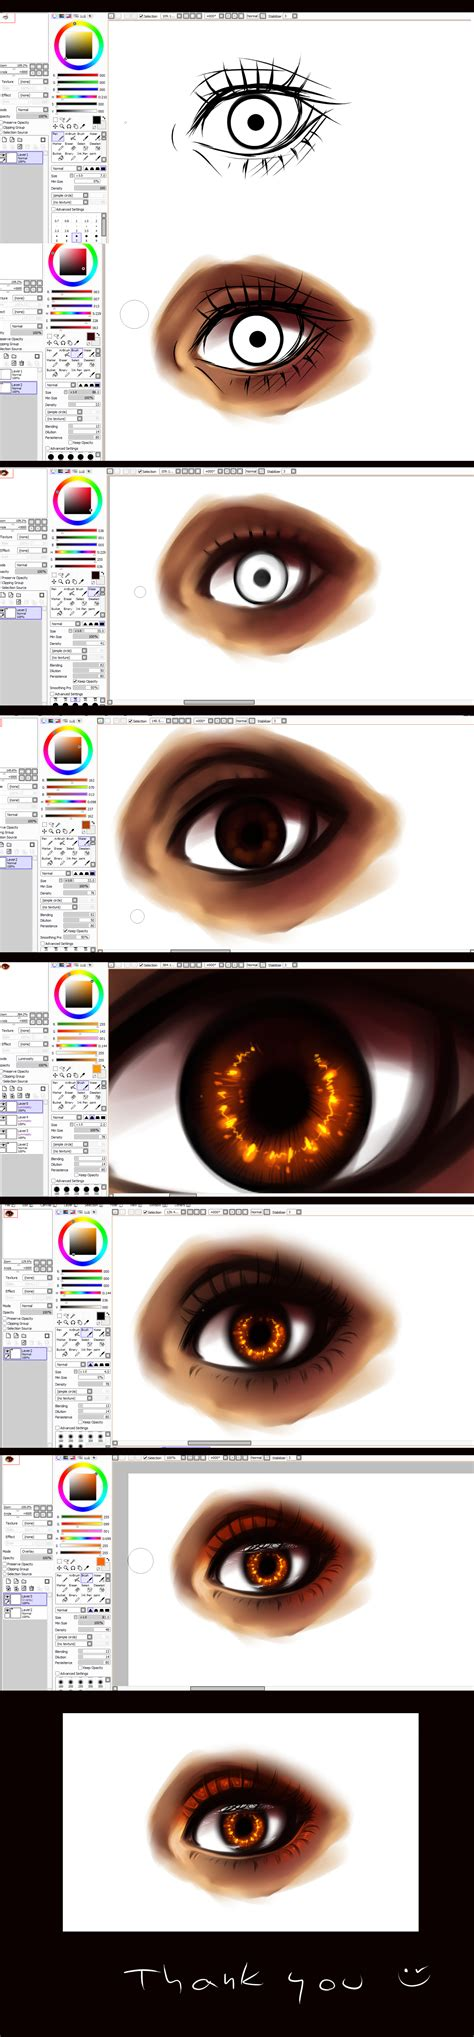 paint tool sai draw tutorial paint tool sai eye tutorial by ryky on deviantart